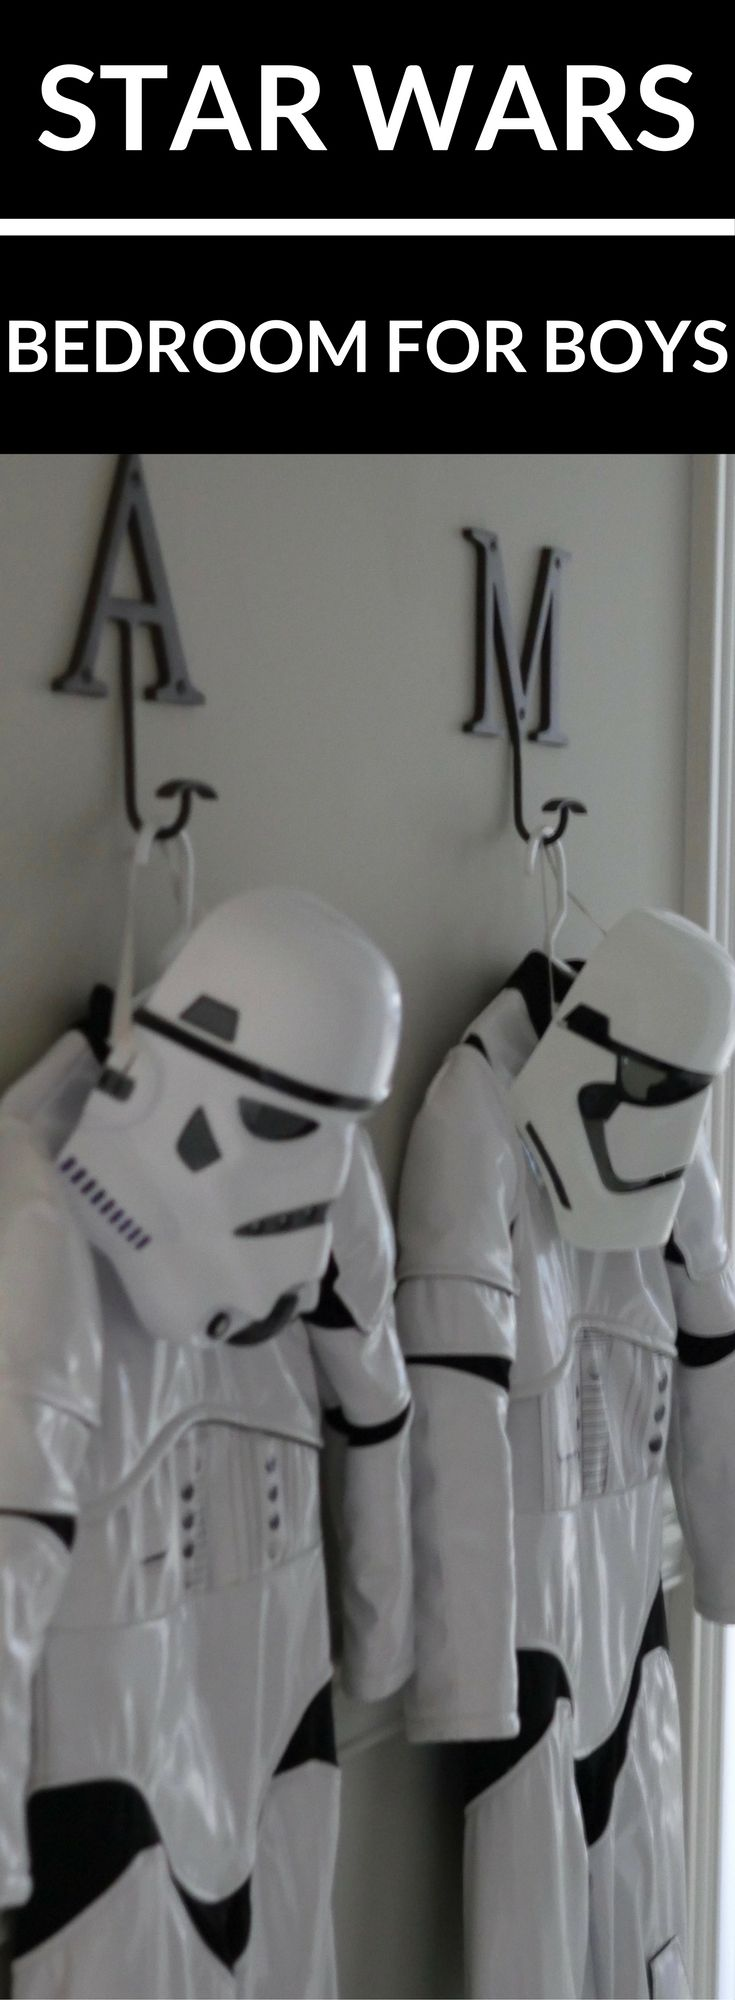 Decorating for one boy can be fun, decorating for two boys can be a challenge! I recently design a boys bedroom for our identical twin boys in the Star Wars theme. I wanted it to last and Benjamin Moore Brushed Aluminum paint and furniture from Pottery Barn. Stars Wars decor for the bedroom added pops of fun but all can be changed. Get bedroom inspiration for boys here with product links to recreate a Star Wars themed bedroom!